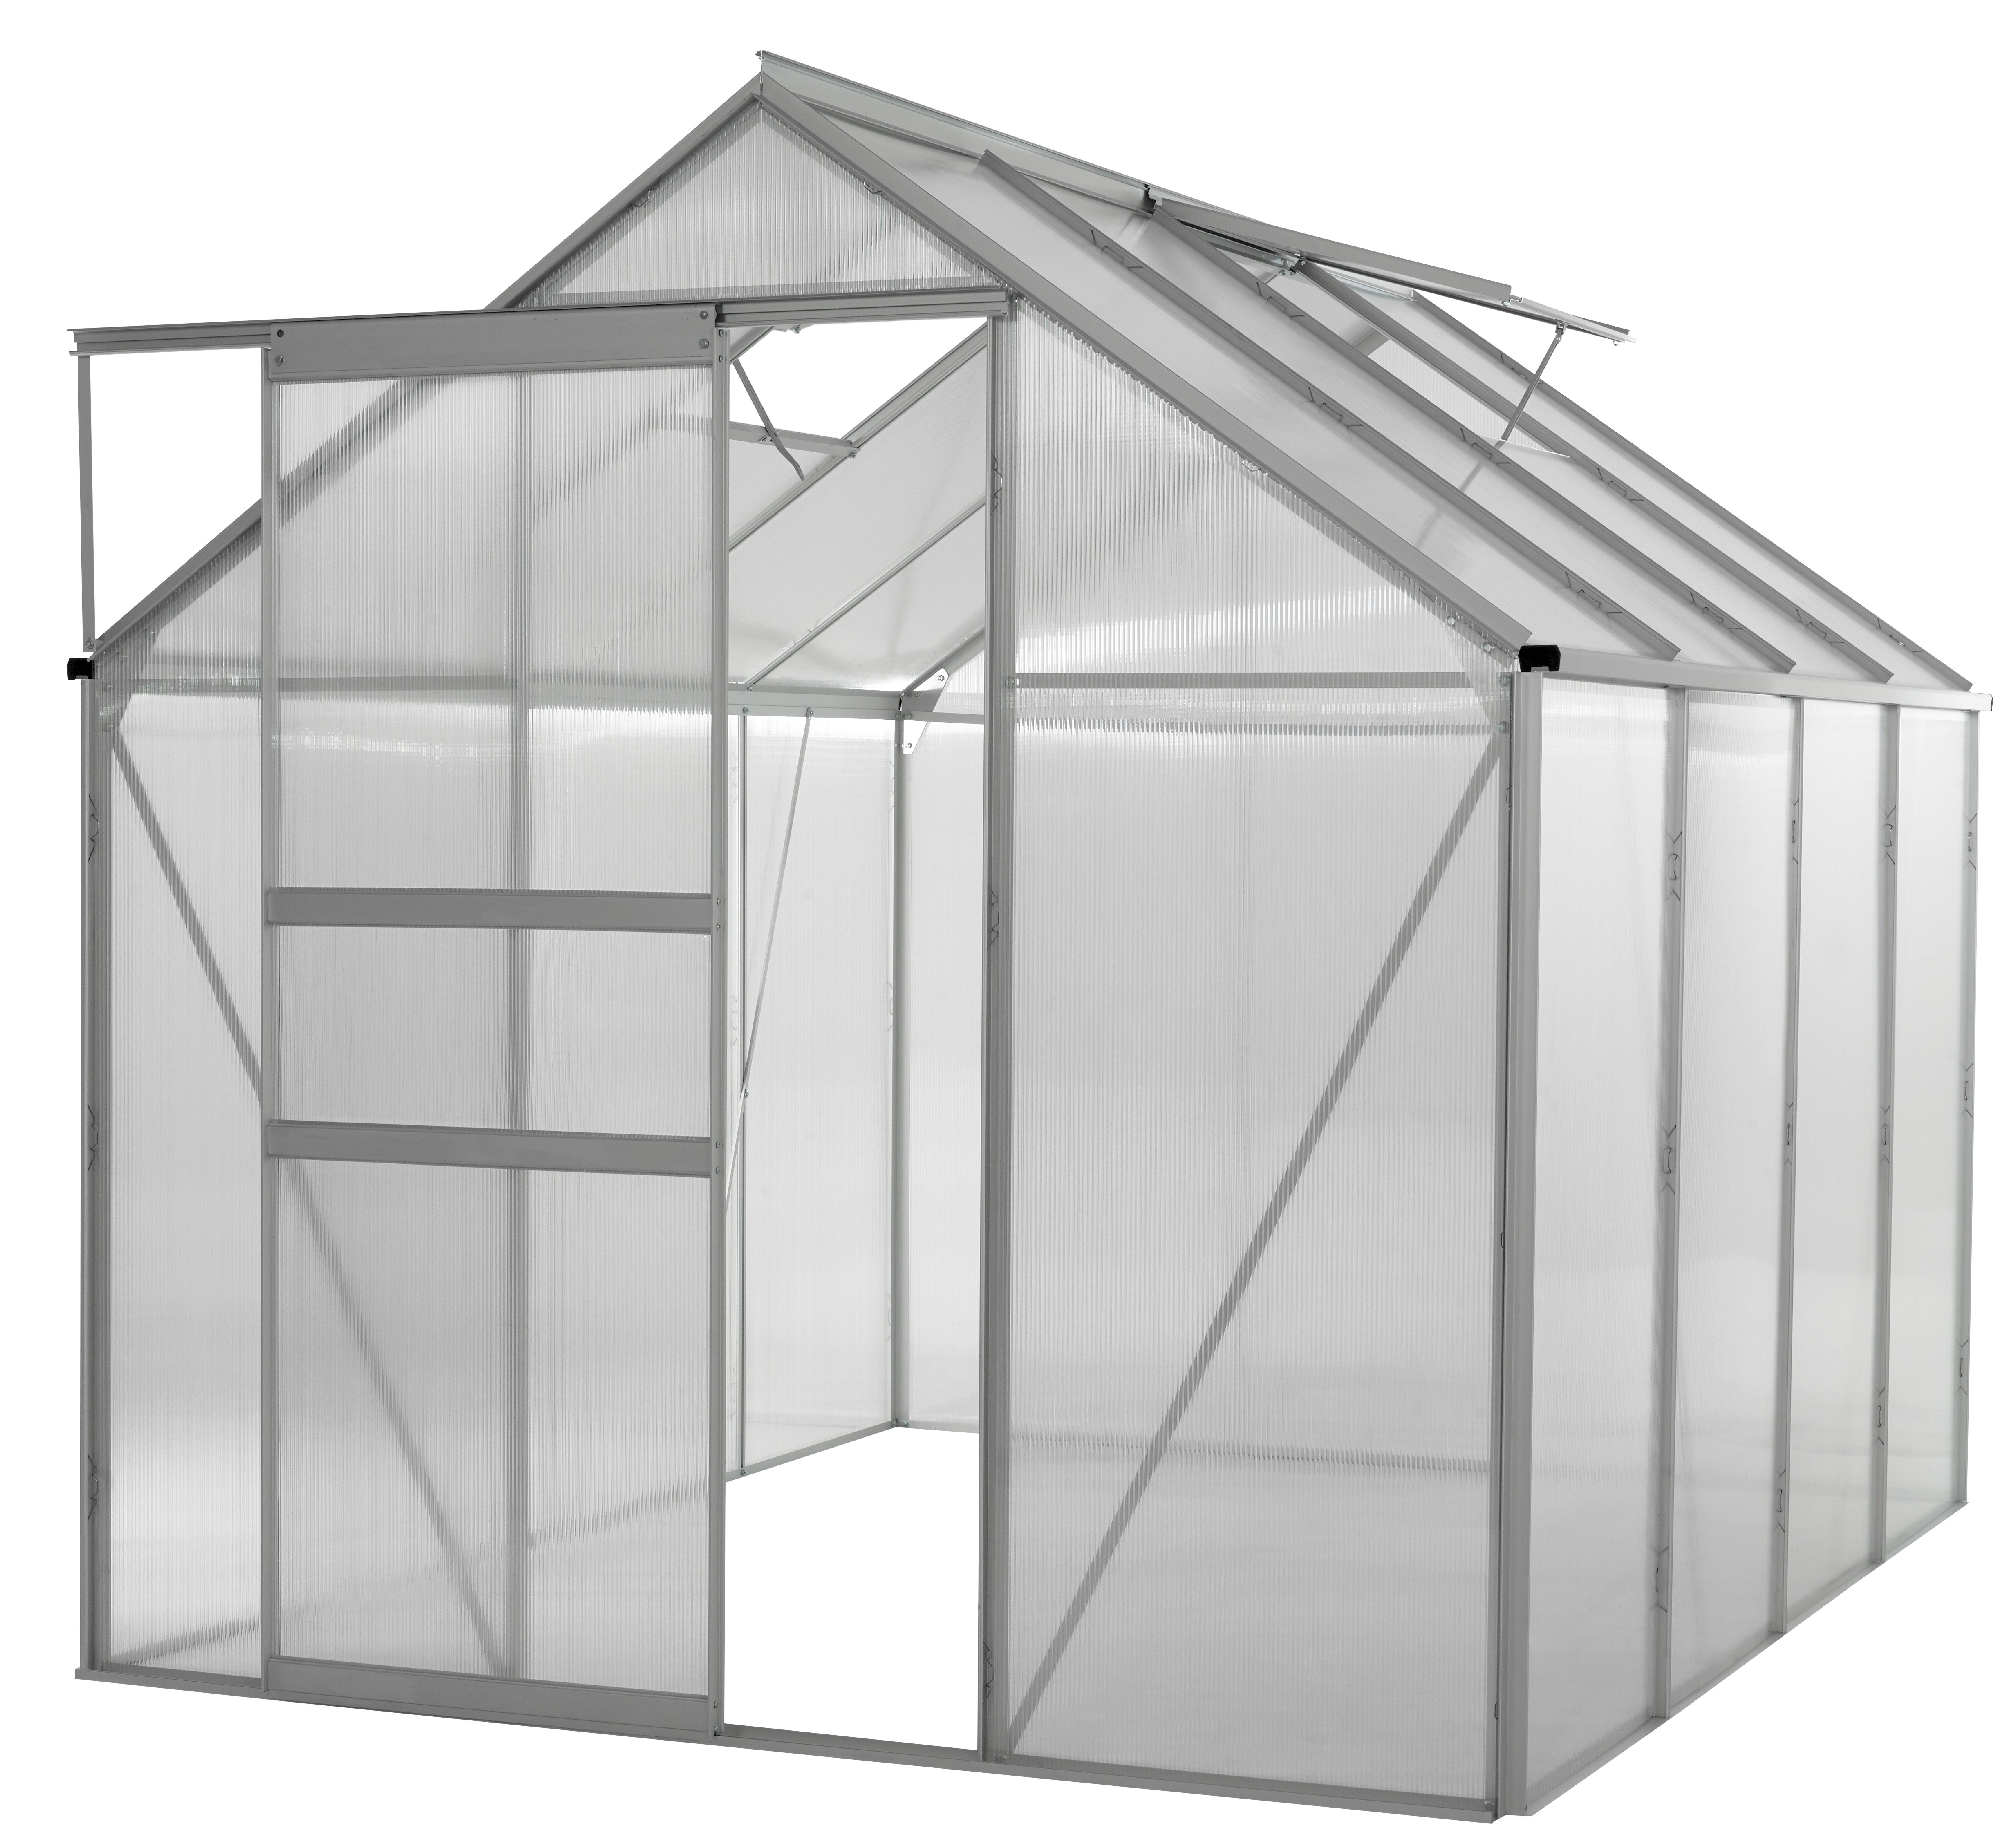 Ogrow 6x8 Ft. Walk In Greenhouse - Large Heavy Duty Aluminium Lawn & Garden Greenhouse - Clear